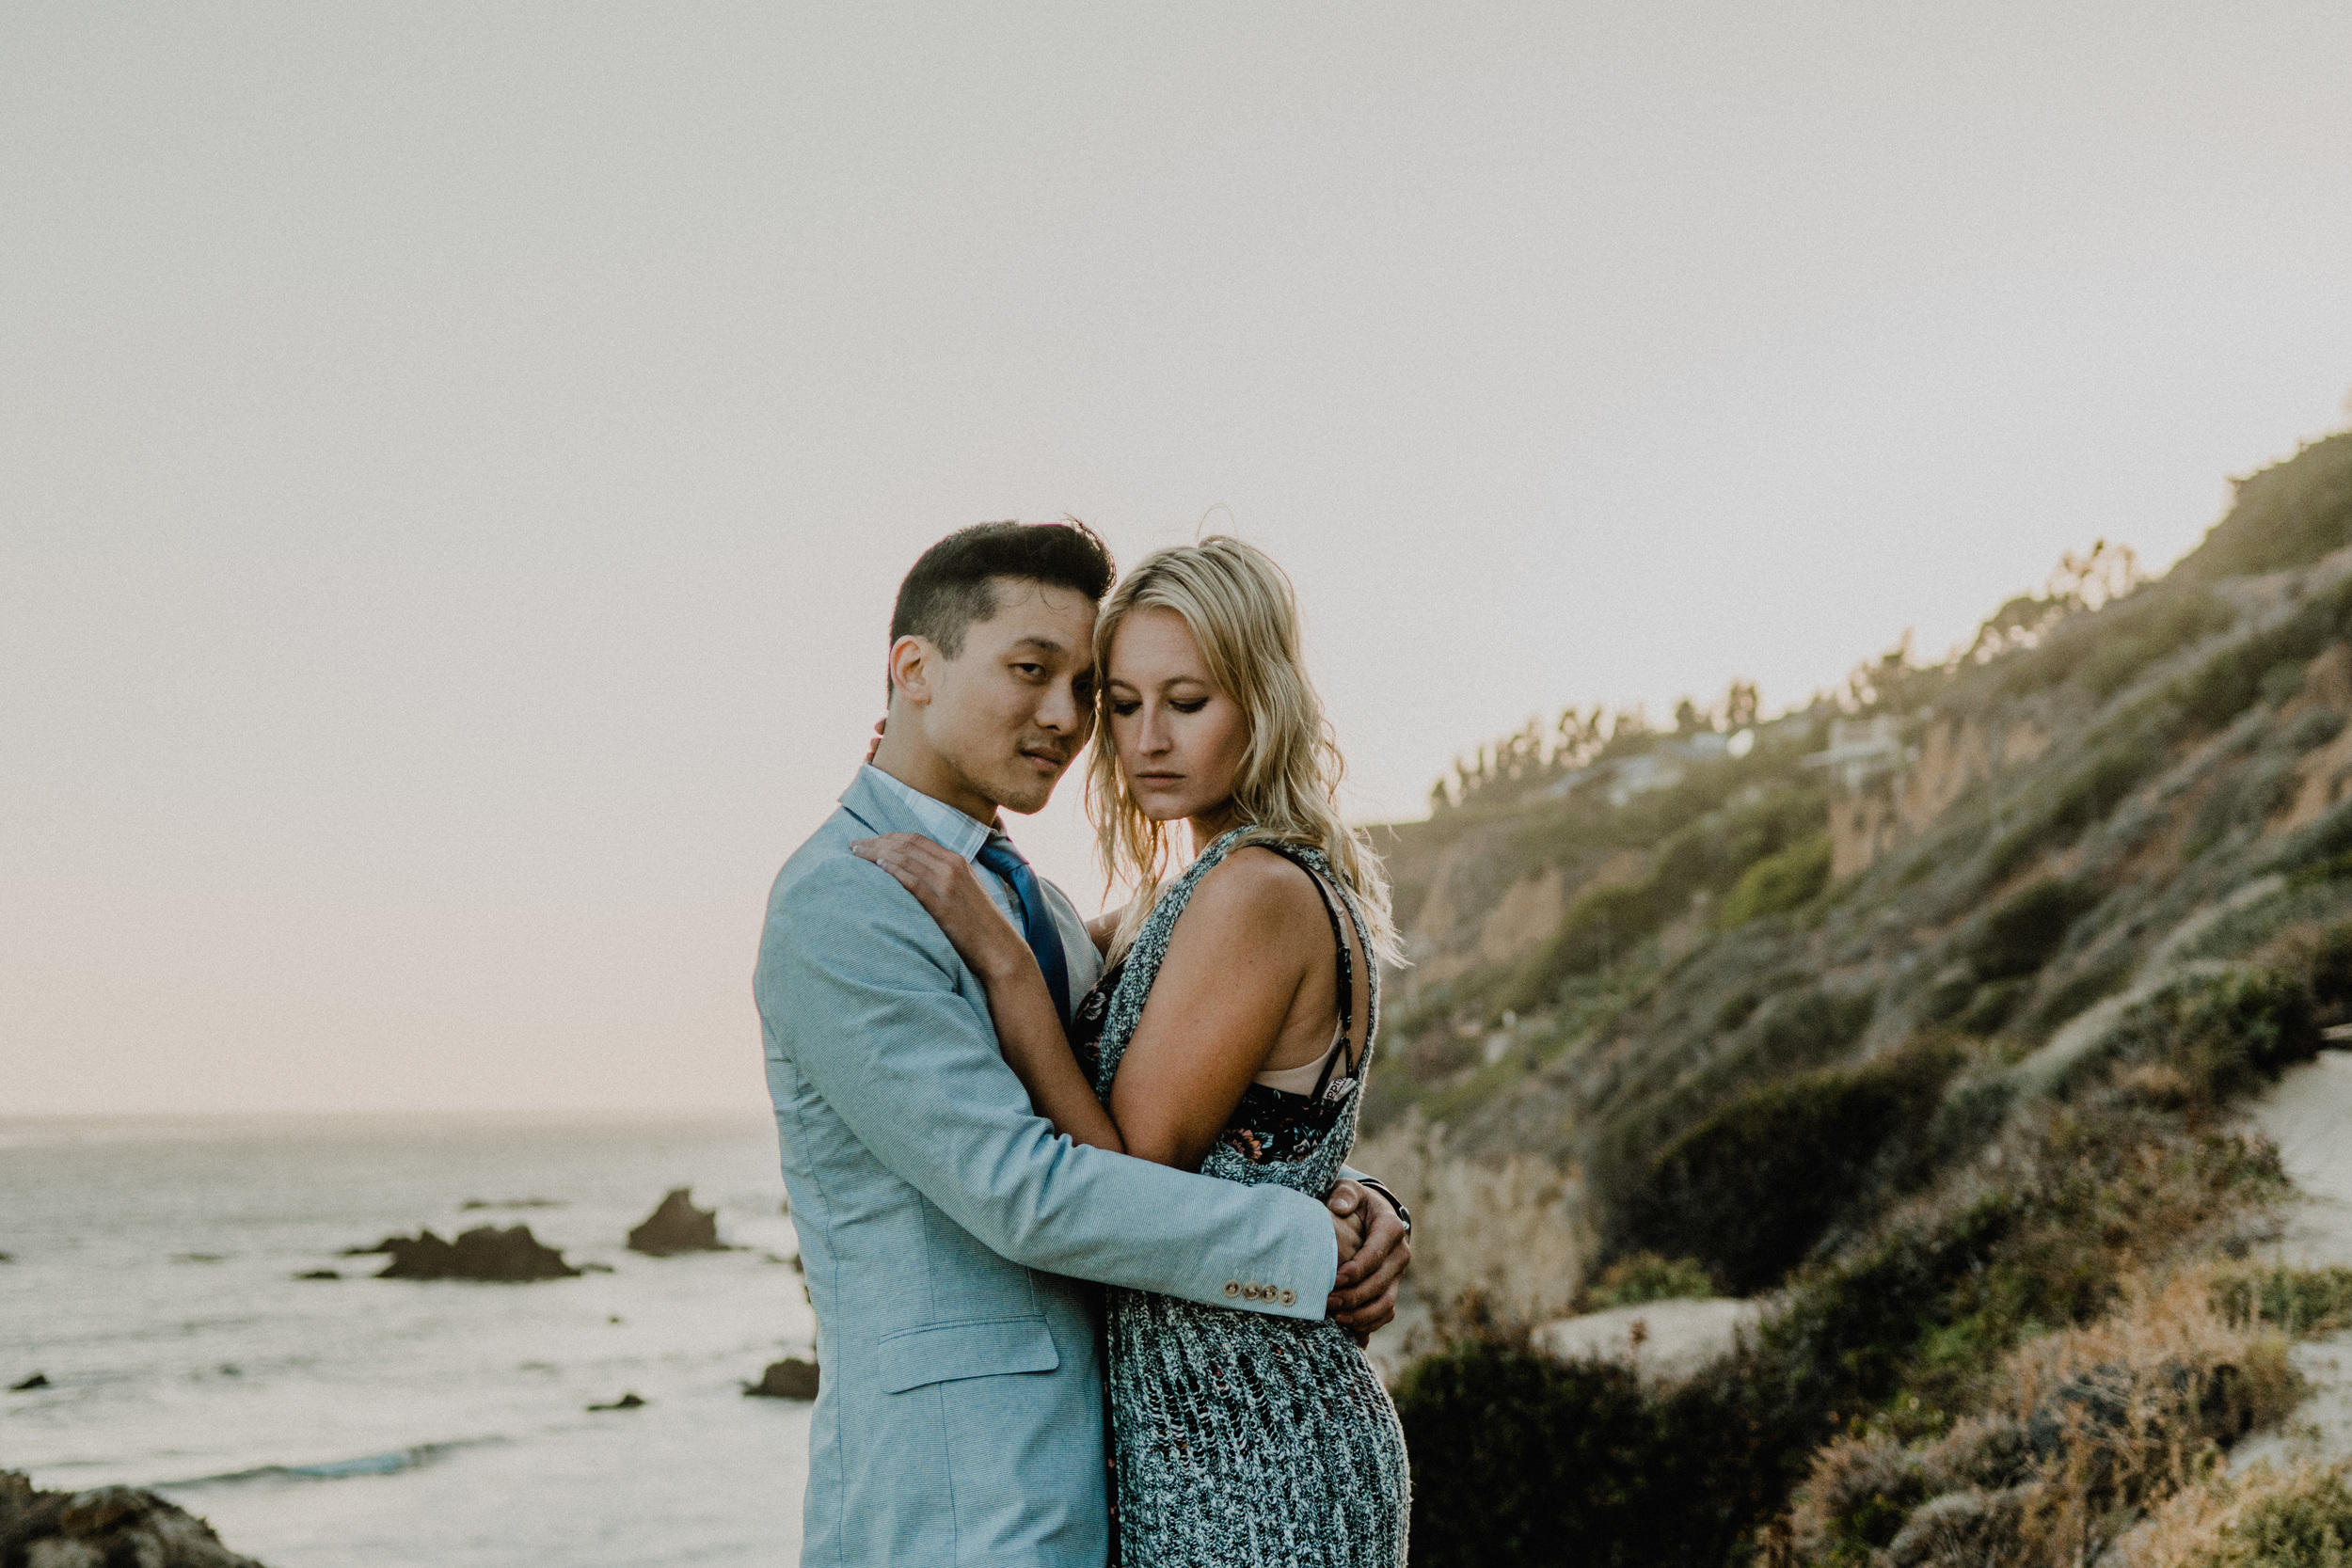 ElMatadorBeach-Editorial-Adventure-Mallory+JustinPhoto-159.jpg